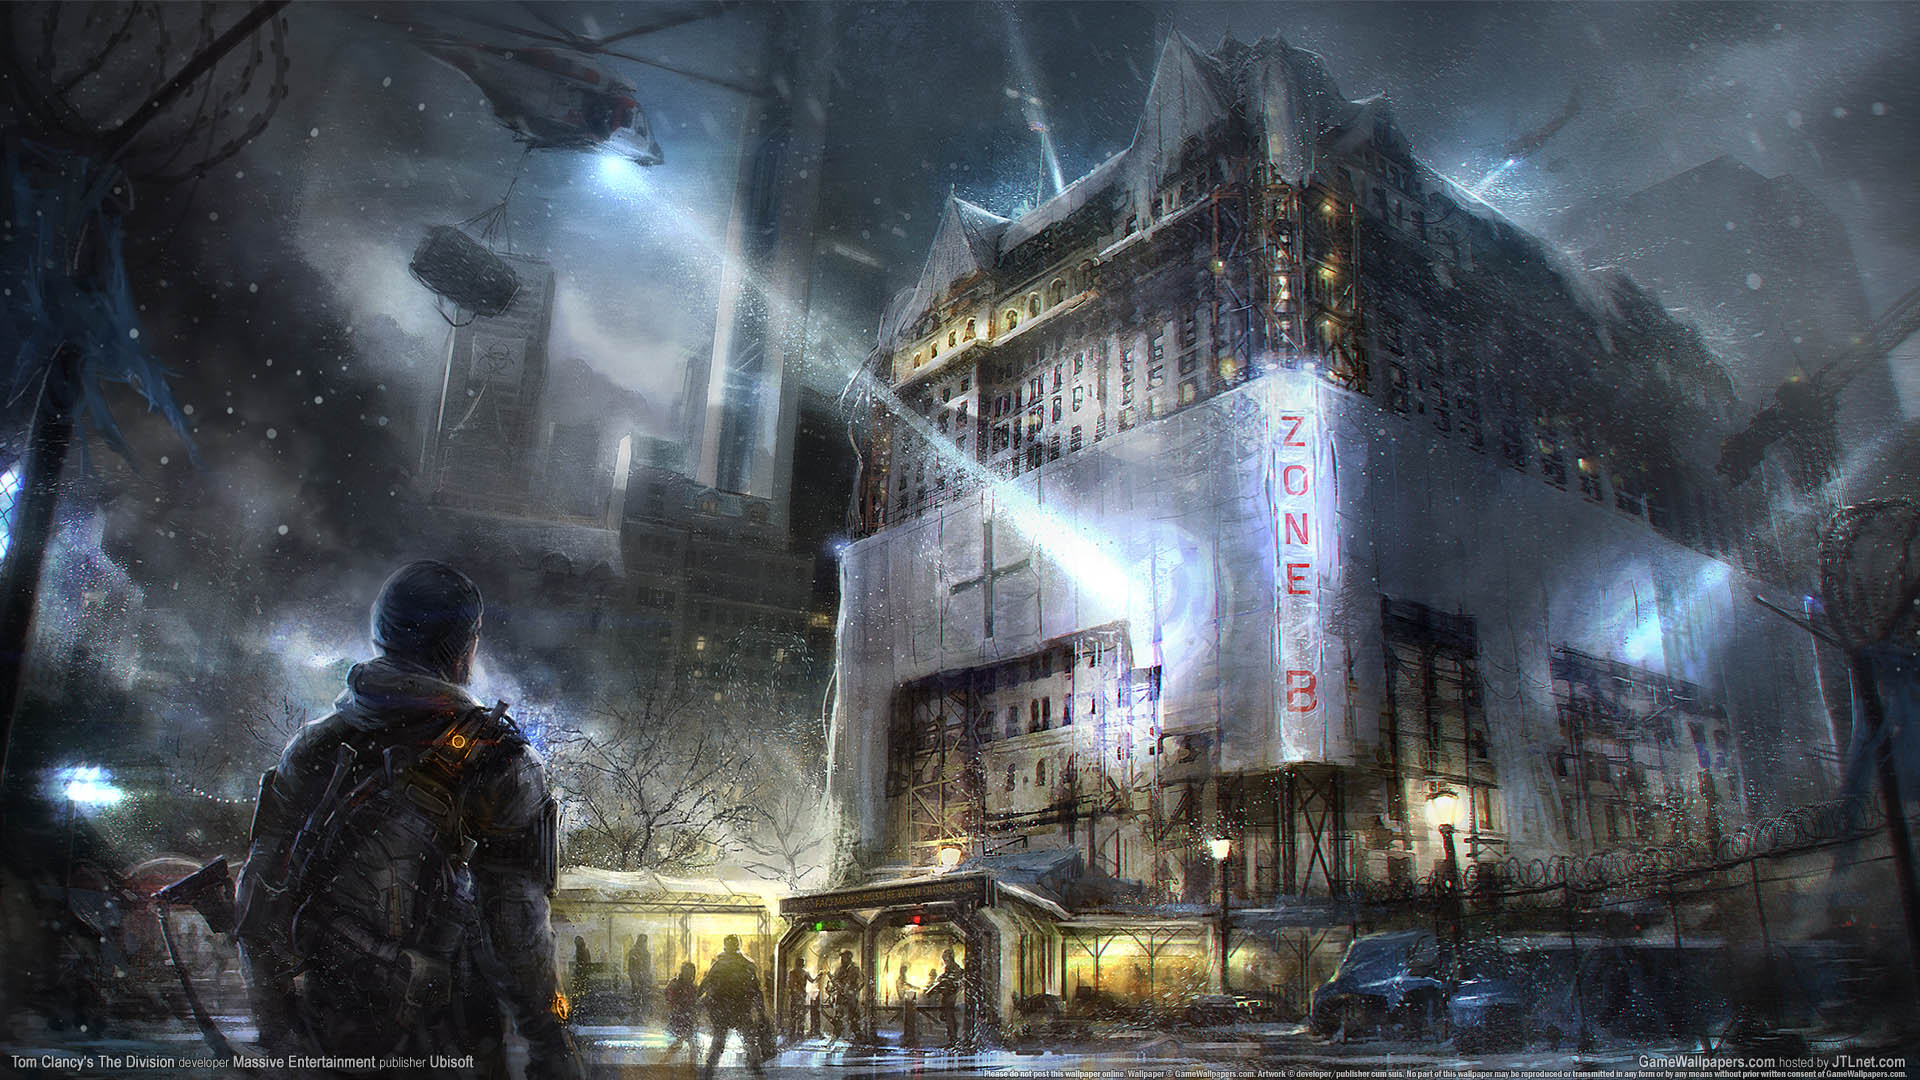 Tom Clancy's The Division achtergrond 01 1920x1080